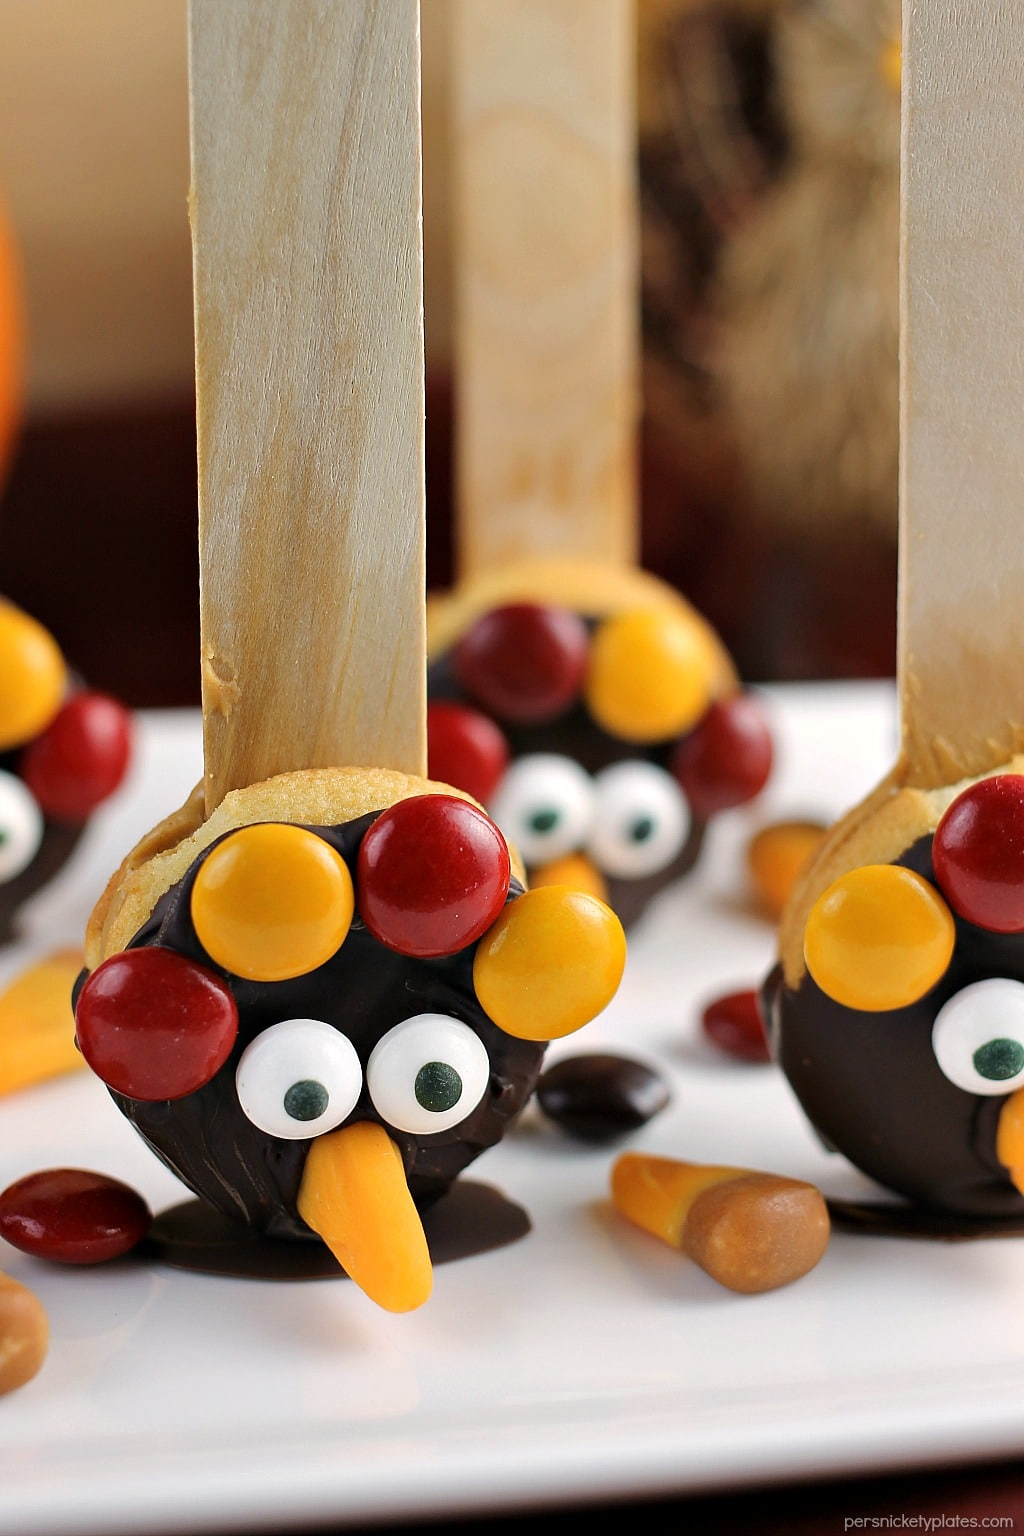 Nilla Wafer Thanksgiving Turkeys are cookies sandwiched together with peanut butter, dipped in chocolate, and decorated with fall colored M&Ms, candy corn, and candy eyes, all on a popsicle stick! So fun for the kids and festive for the Thanksgiving table!